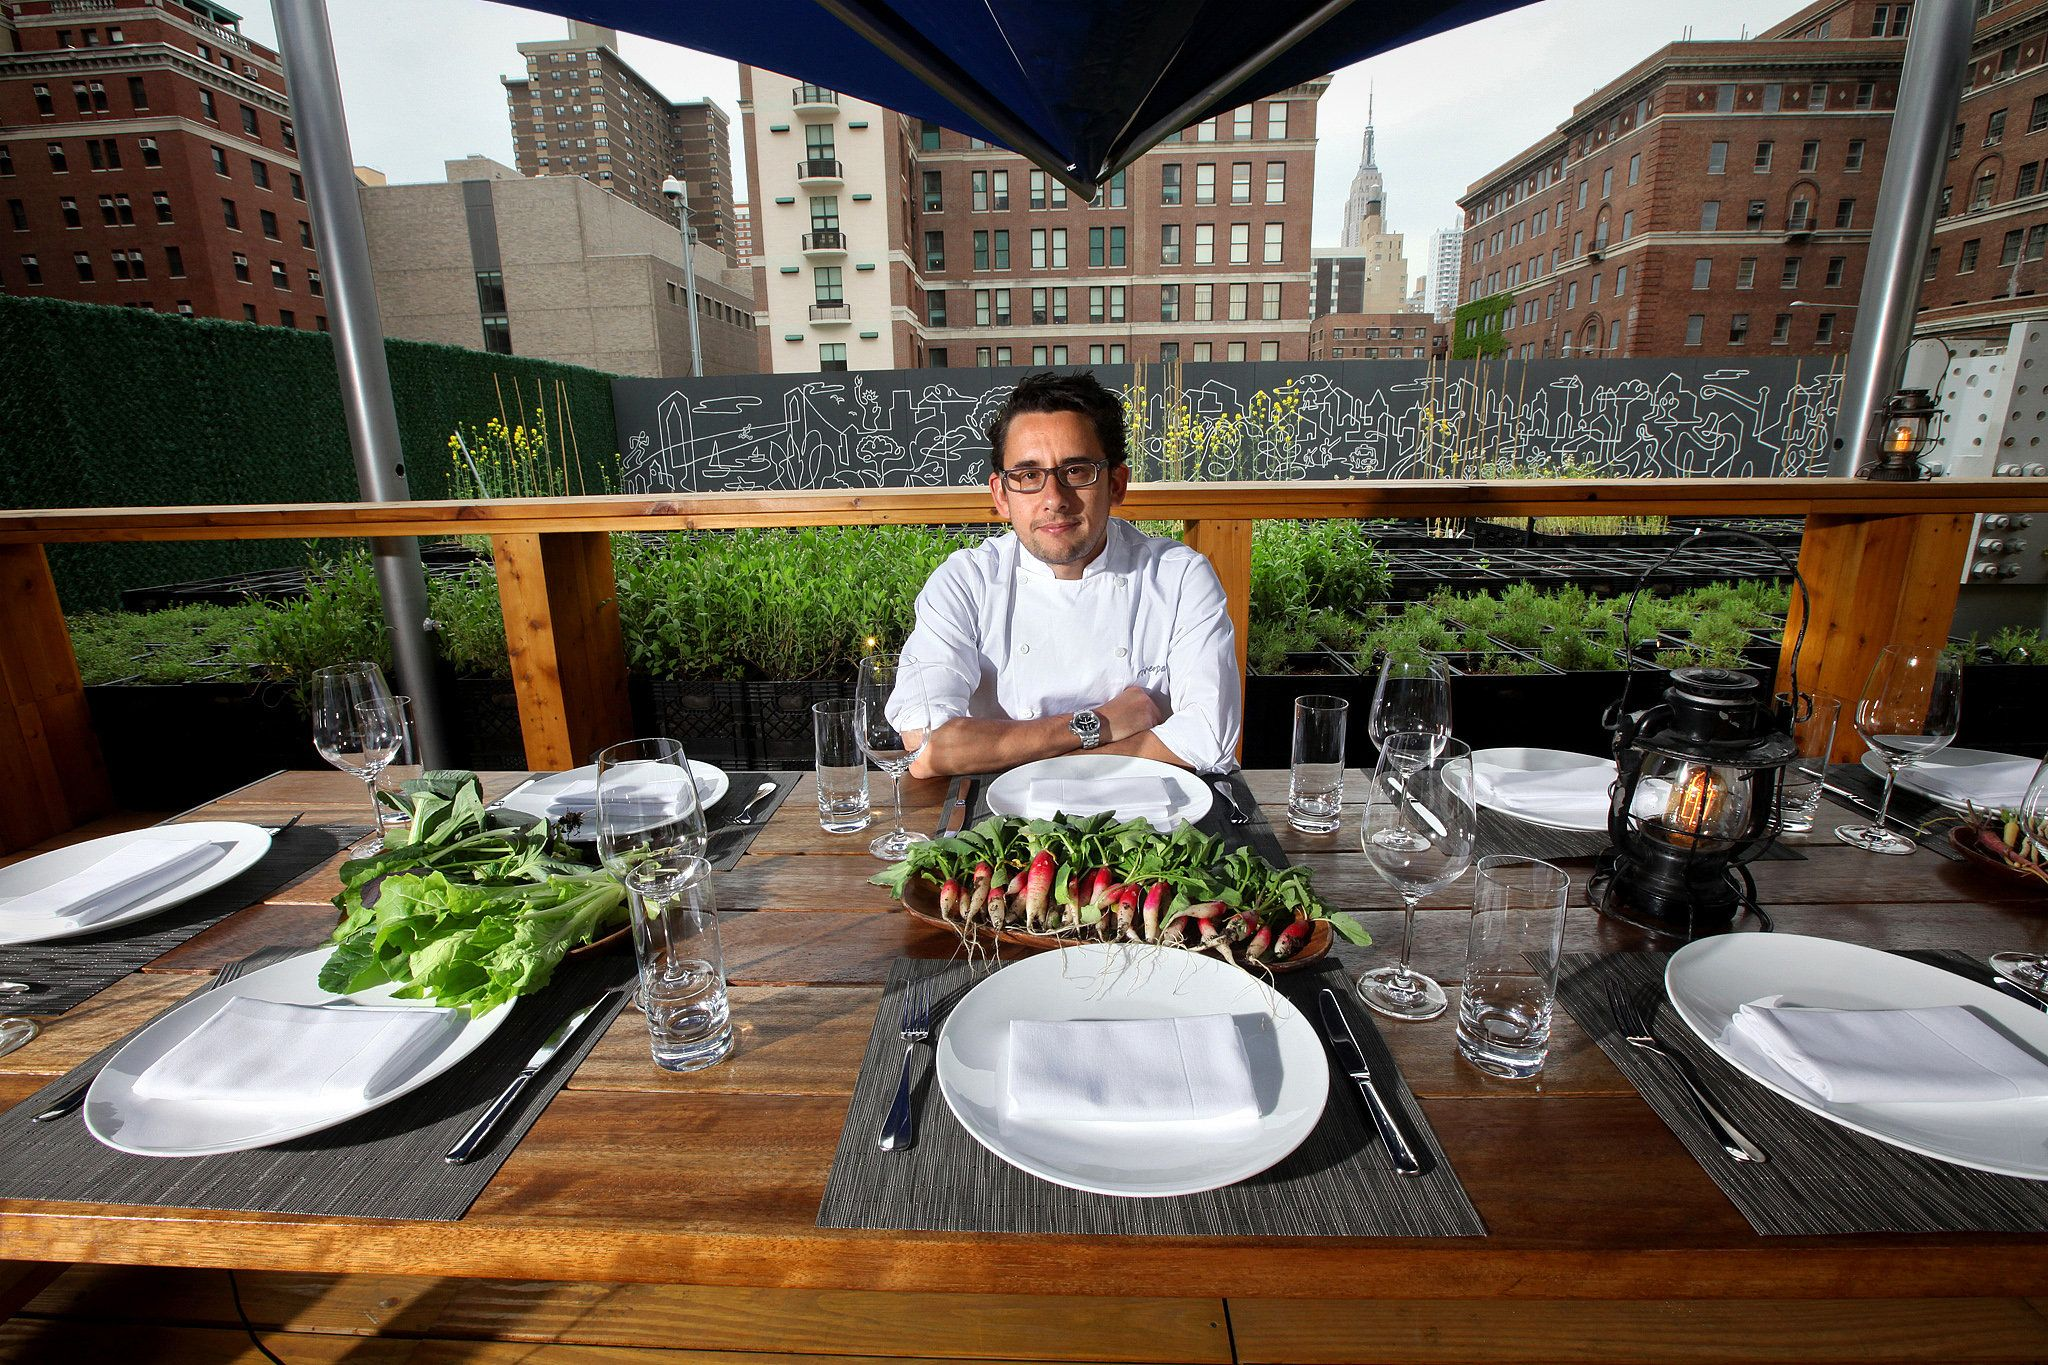 Talk about locavores: the restaurant Riverpark serves vegetables it grows, at an outdoor table.